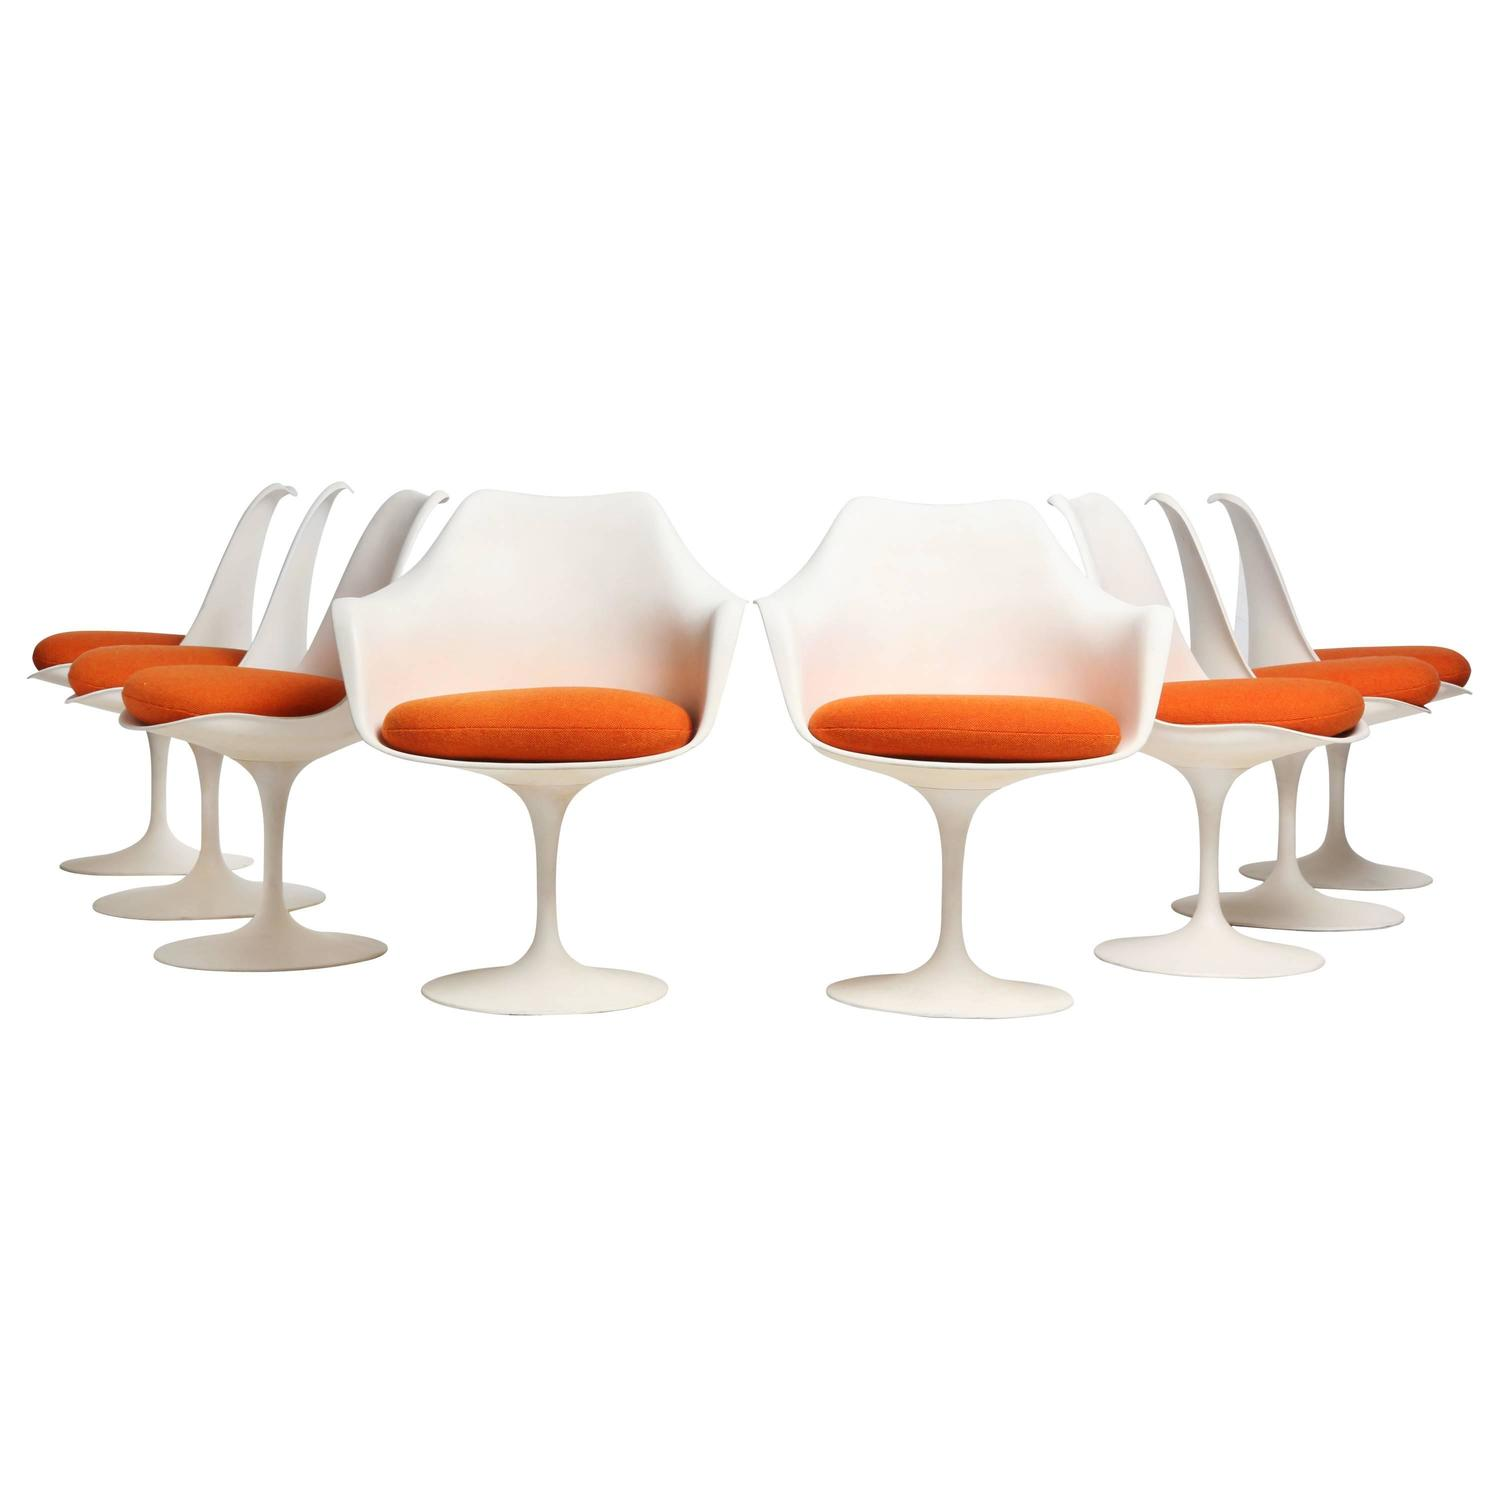 tulip dining room chairs chair sets of 4 by eero saarinen for sale at 1stdibs